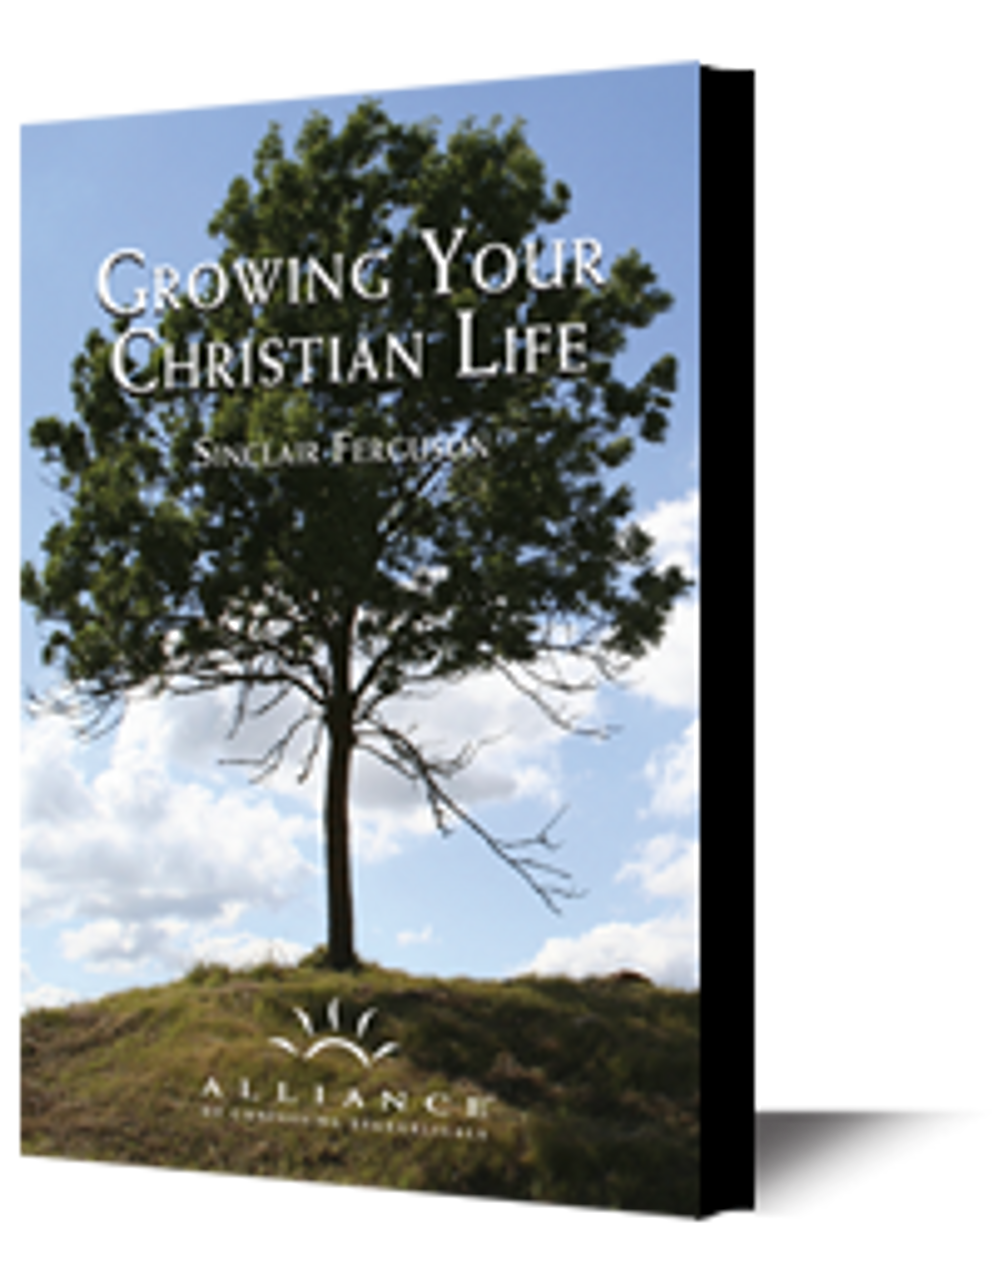 Growing Your Christian Life (mp3 download set)